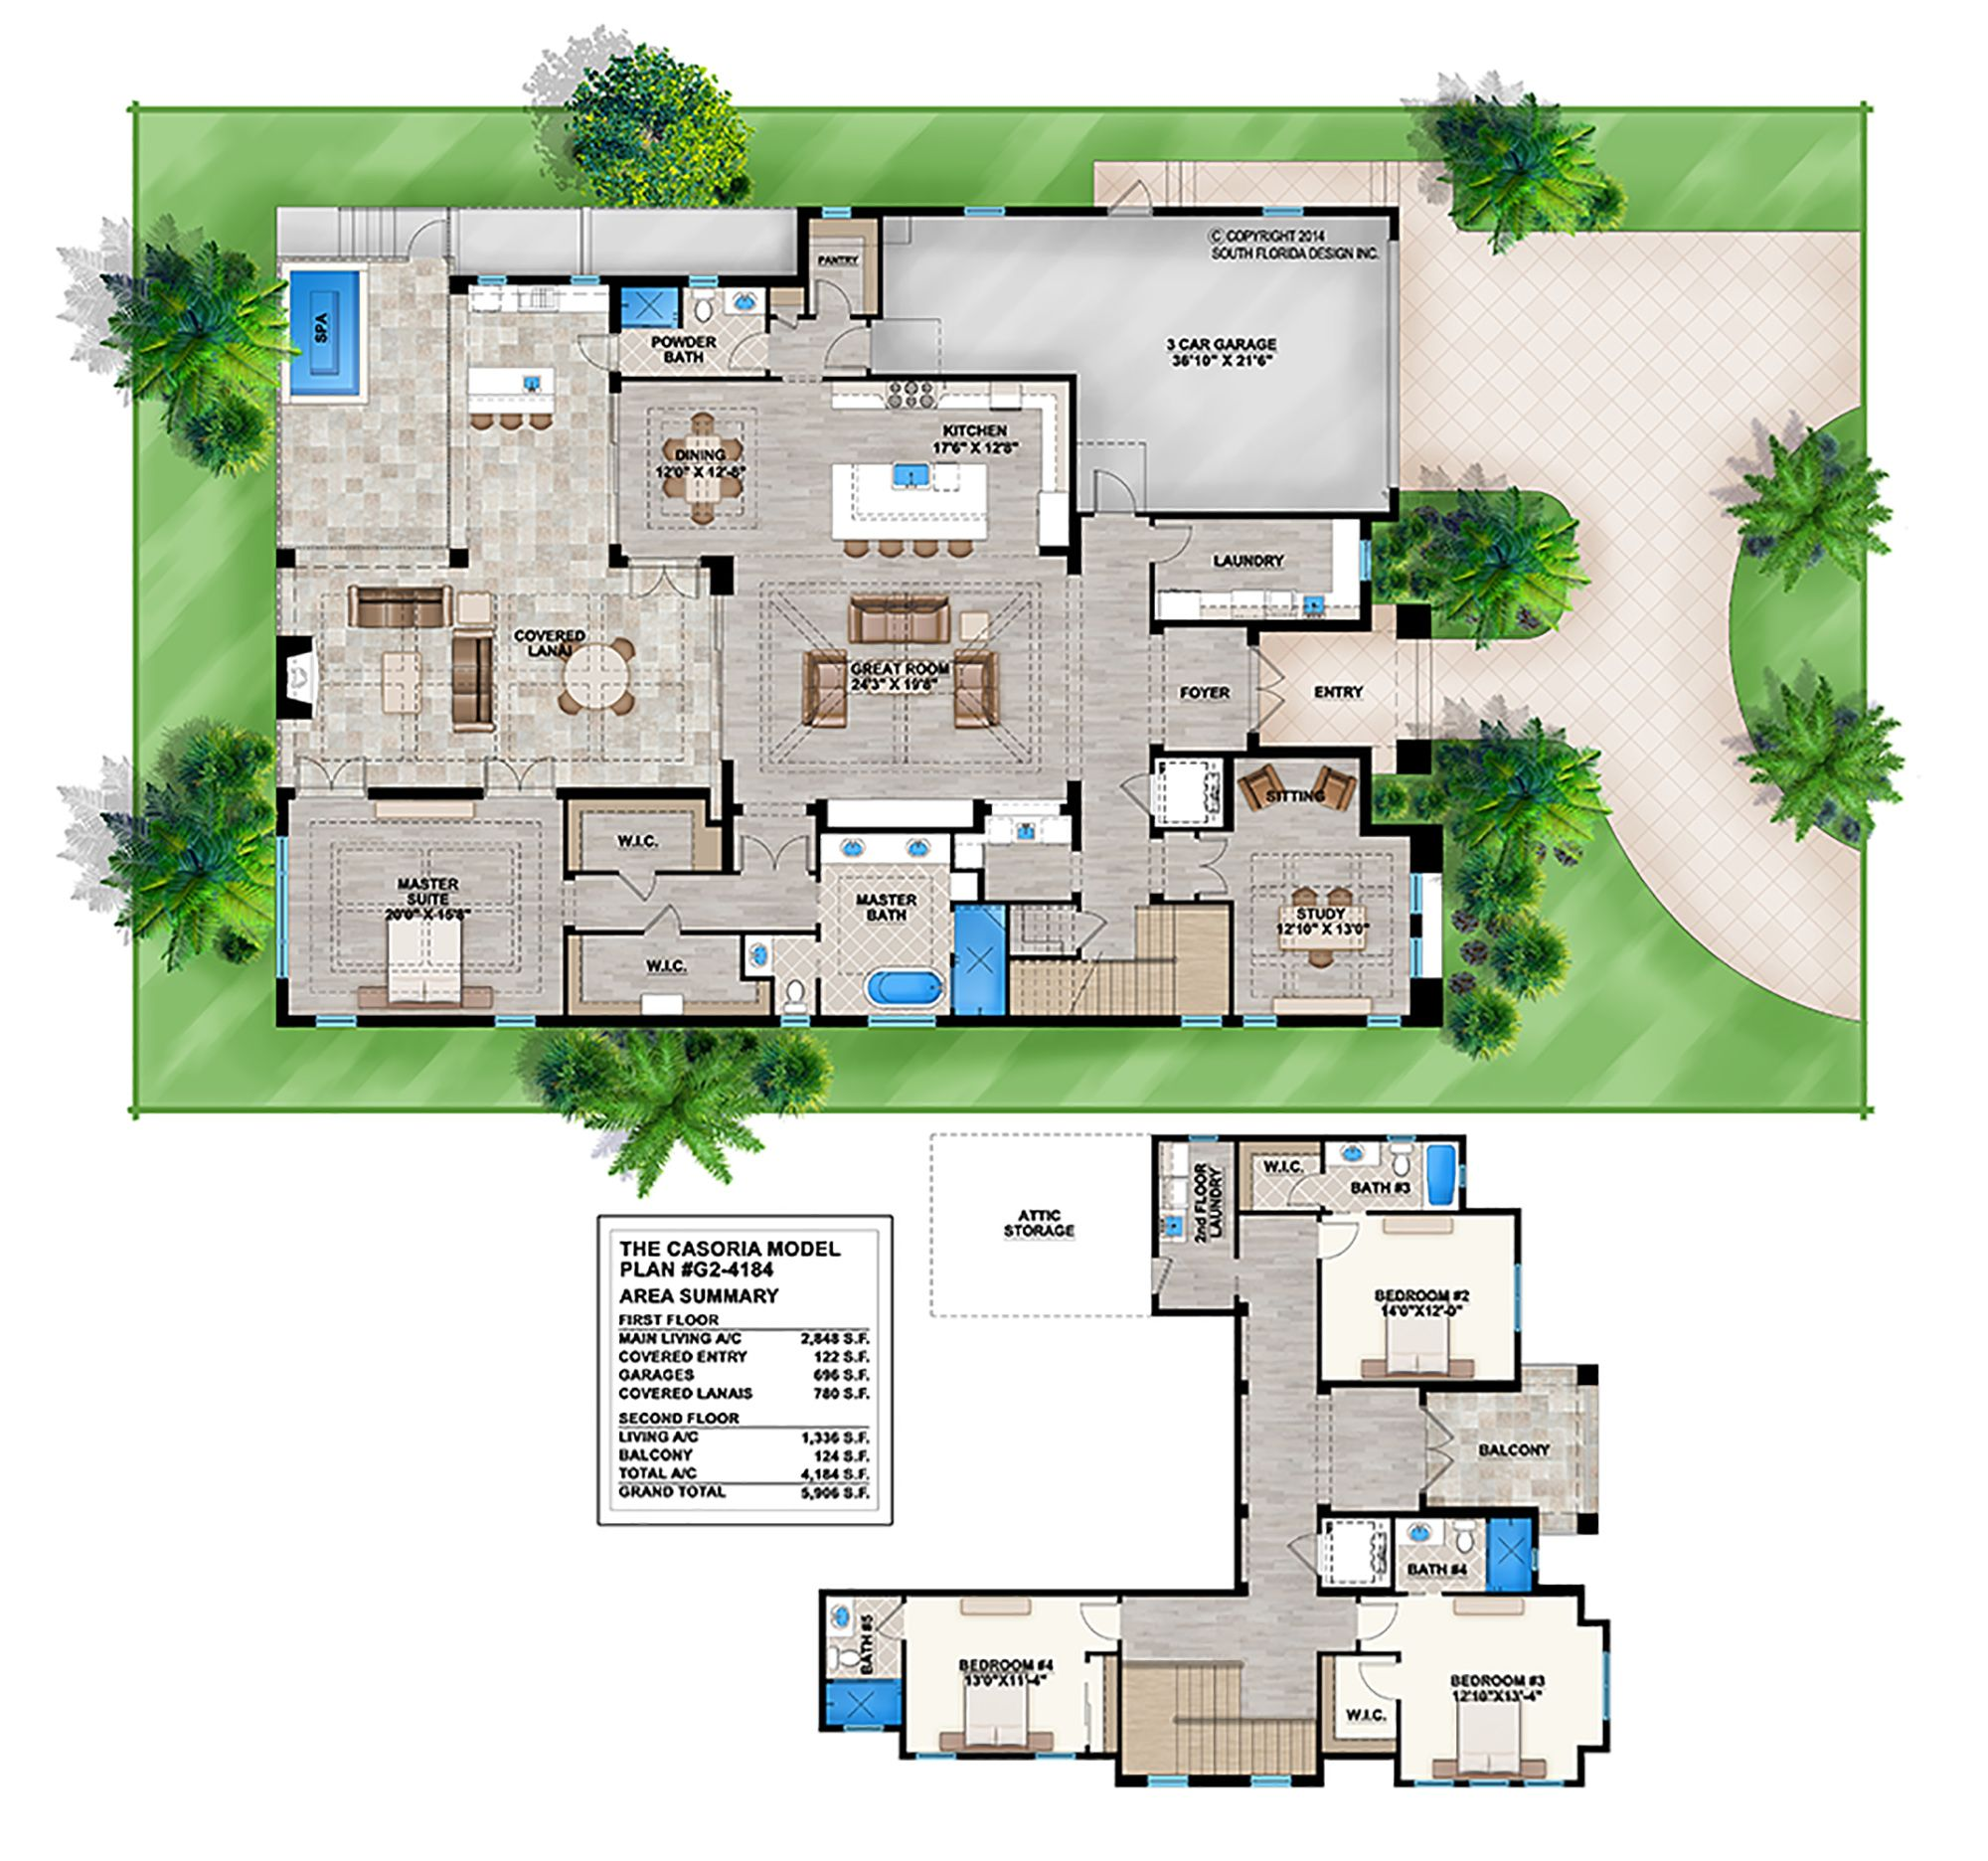 2 Story Mediterranean House Plan By South Florida Design